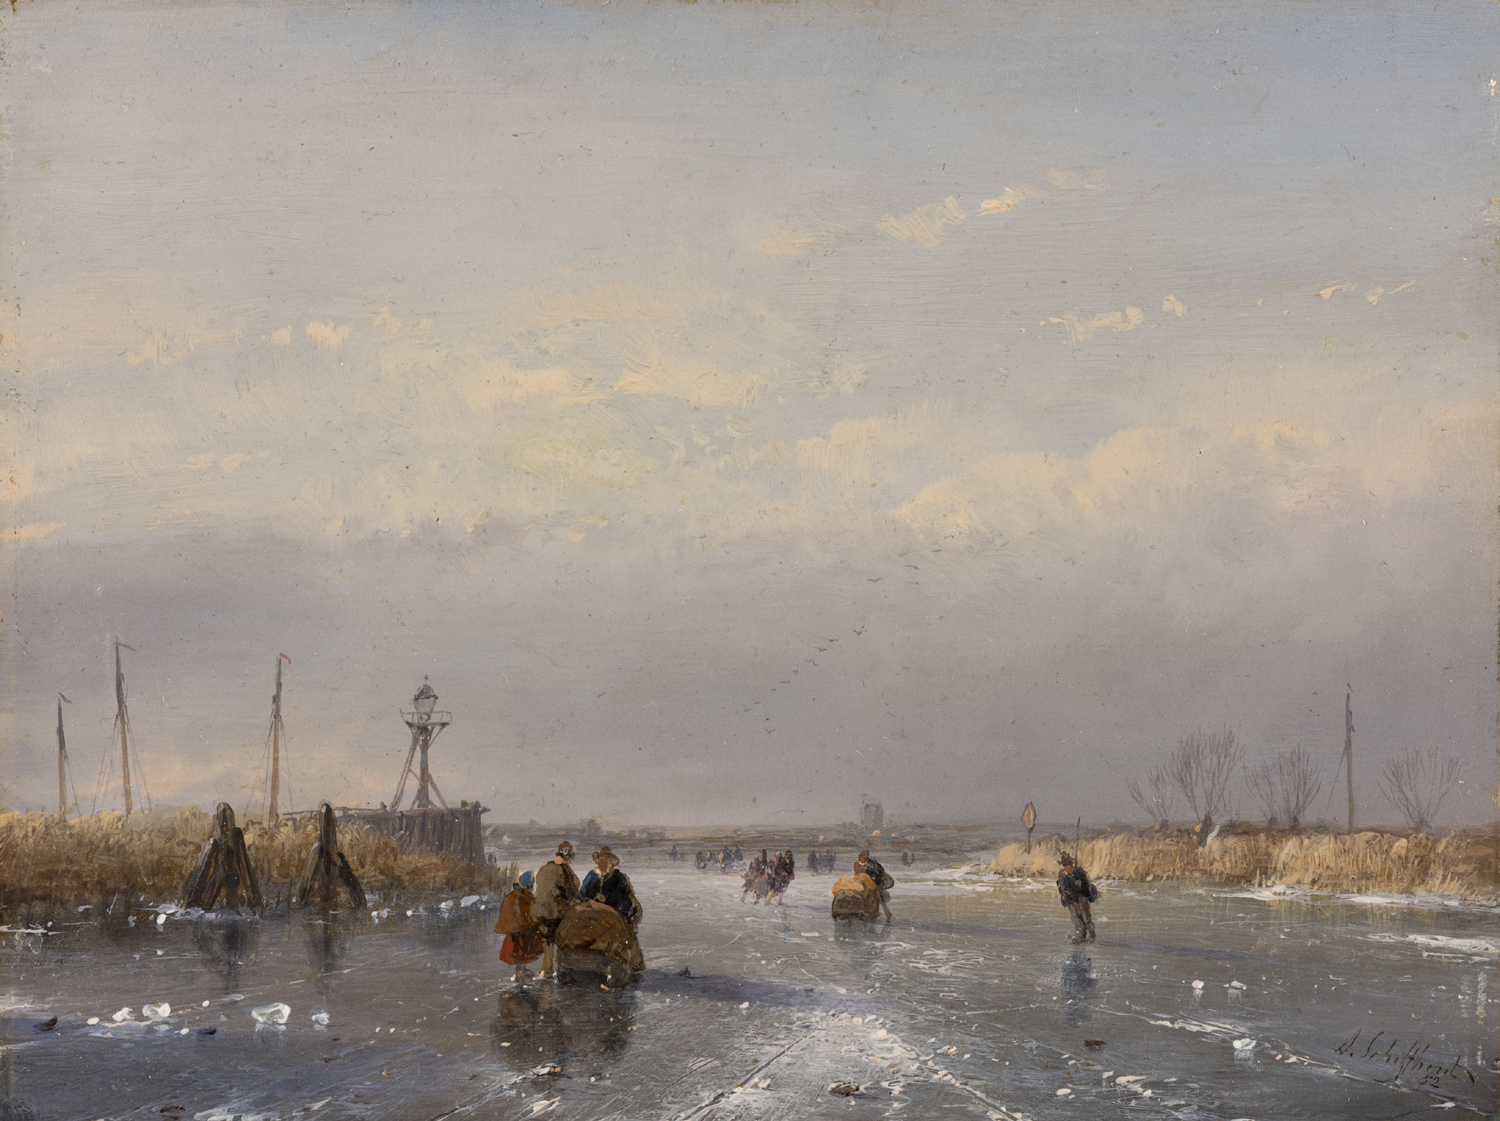 Andreas Schelfhout | Skaters on a frozen river| Kunsthandel Bies | Bies Gallery